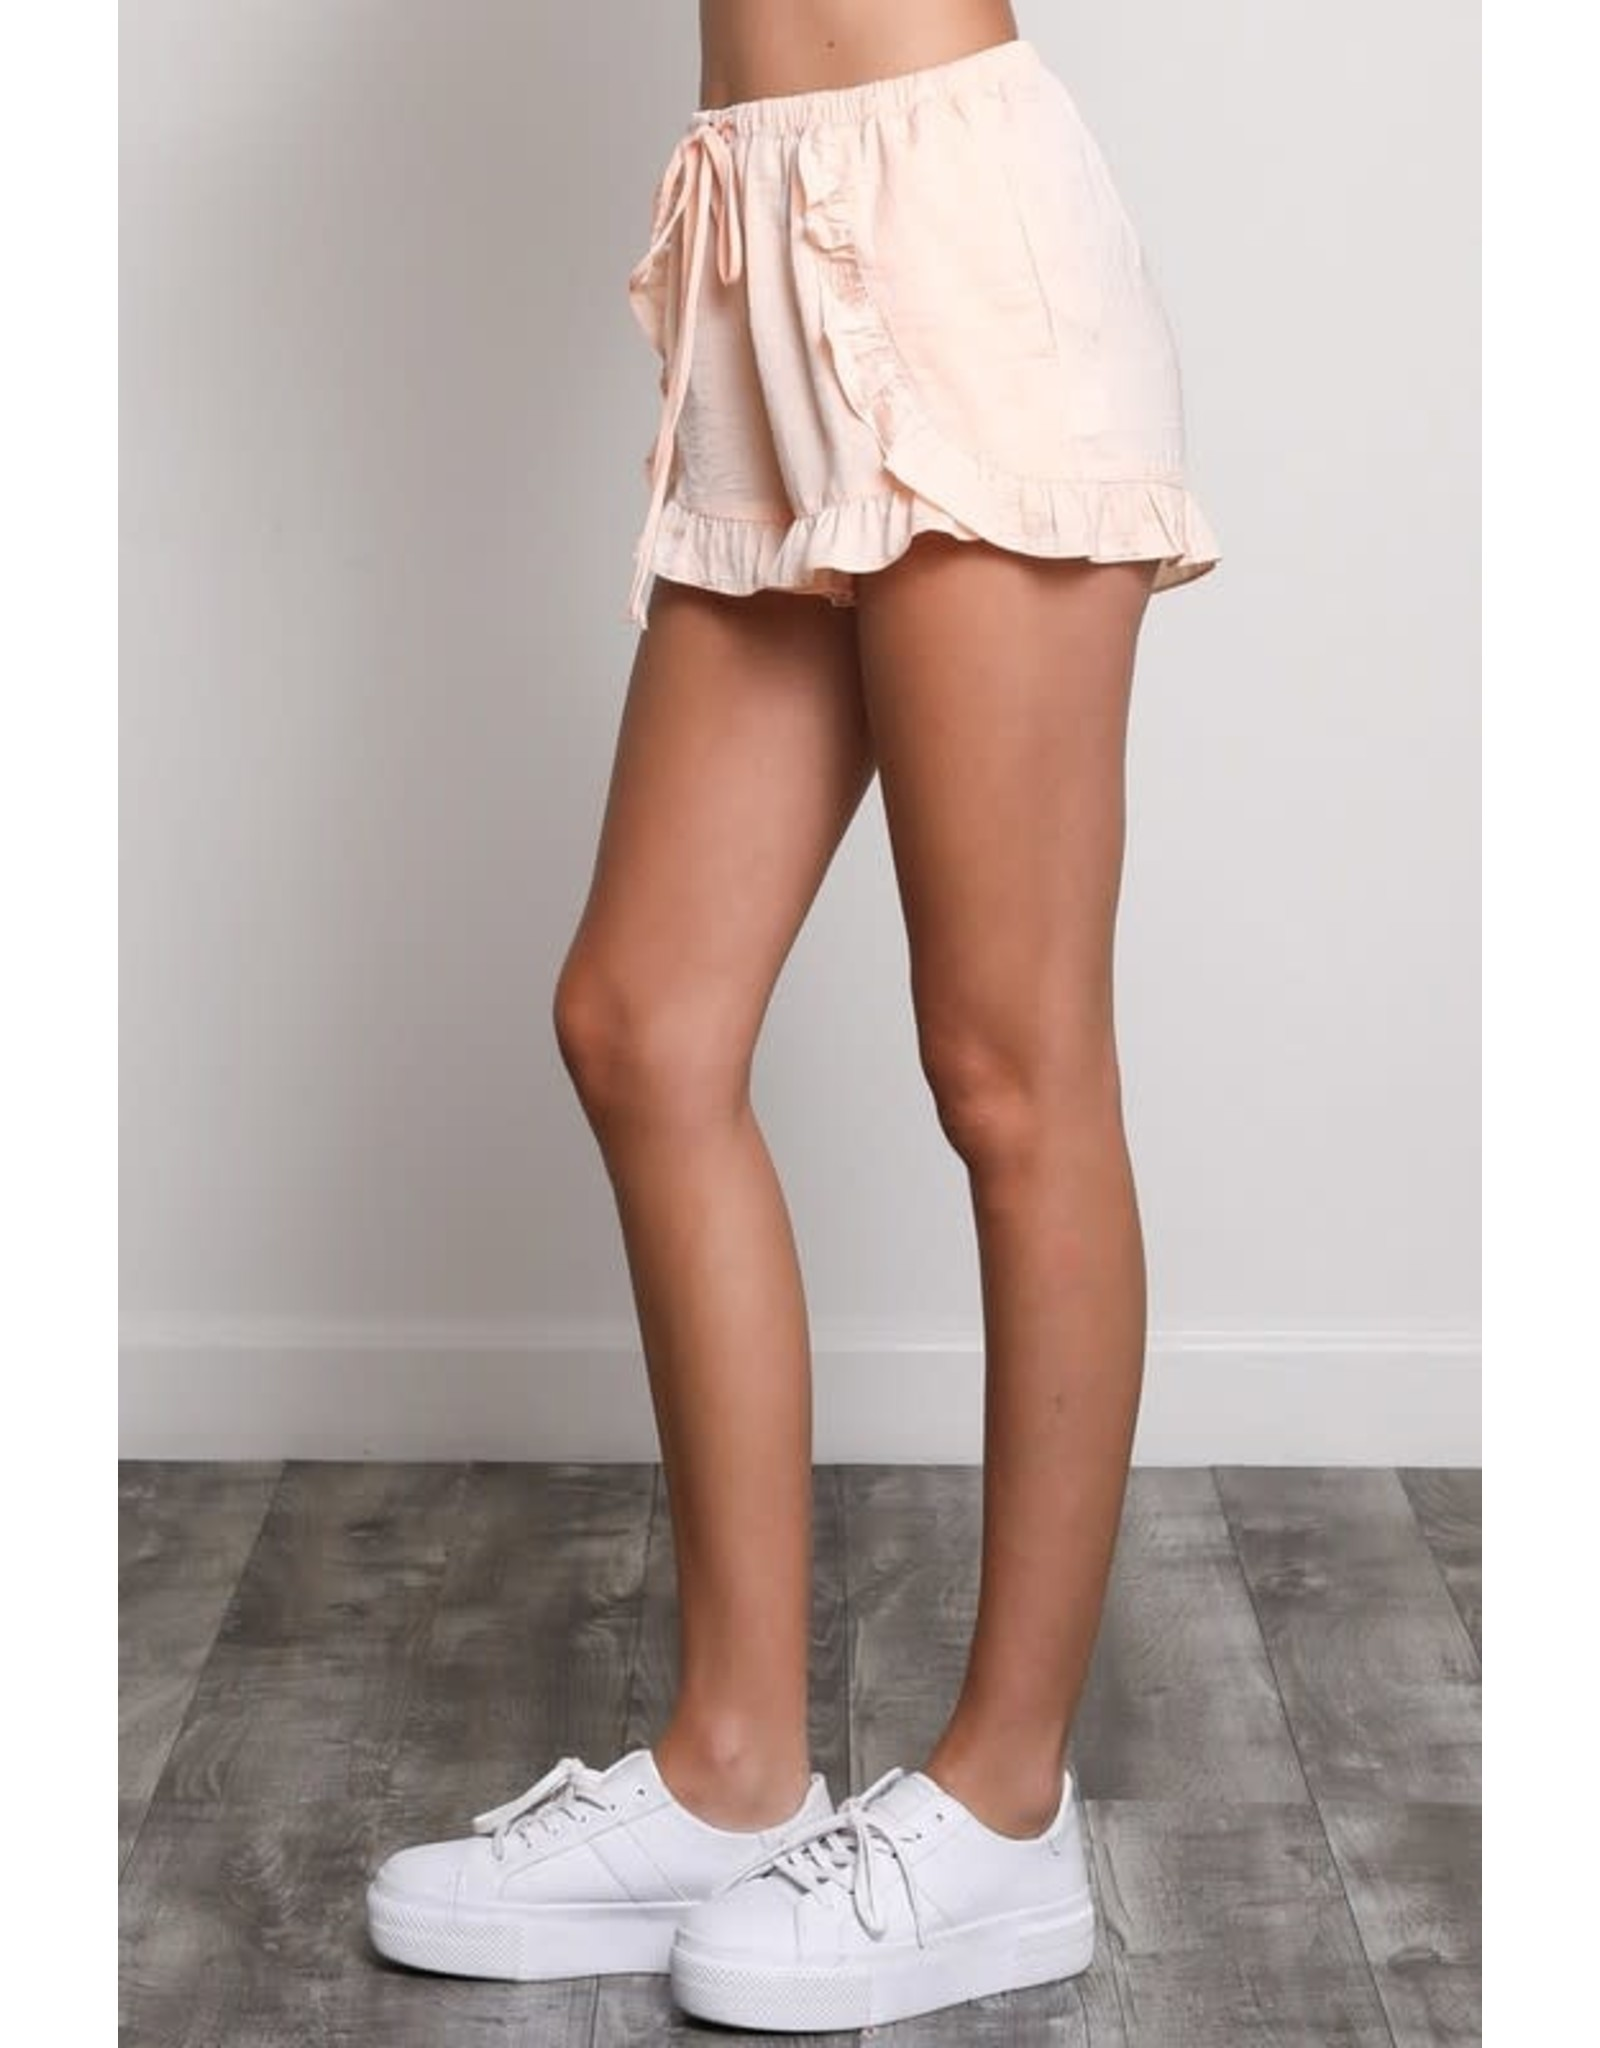 Georgia Air Ruffle Shorts